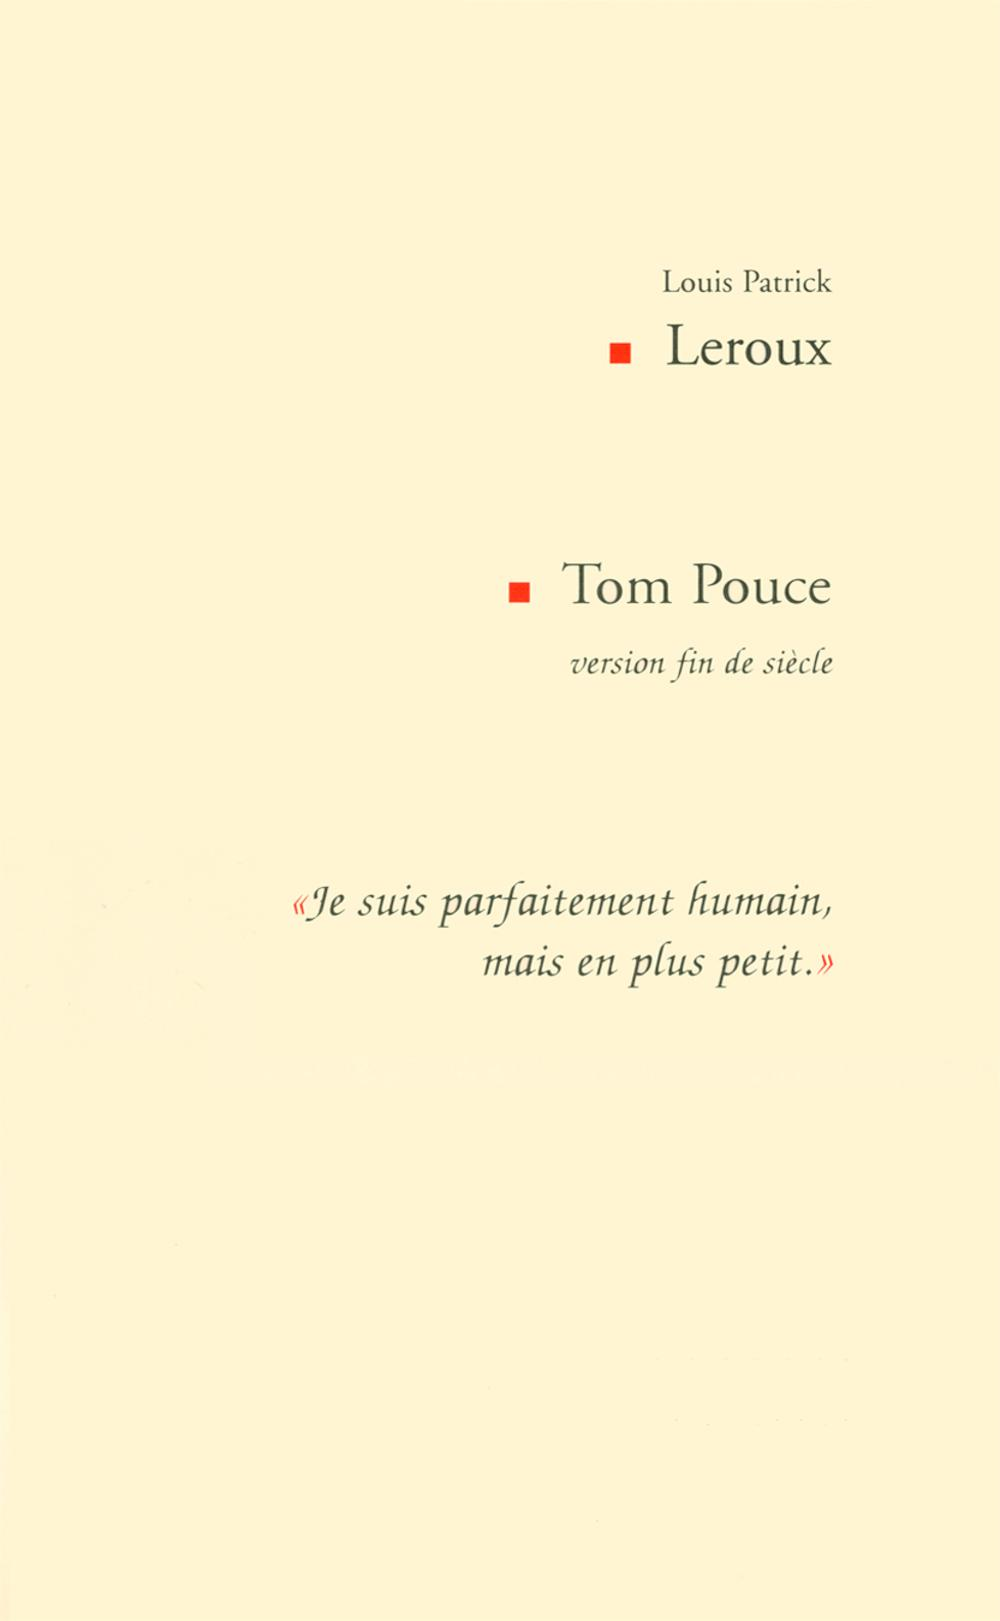 TOM POUCE VERSION FIN DE SIECLE